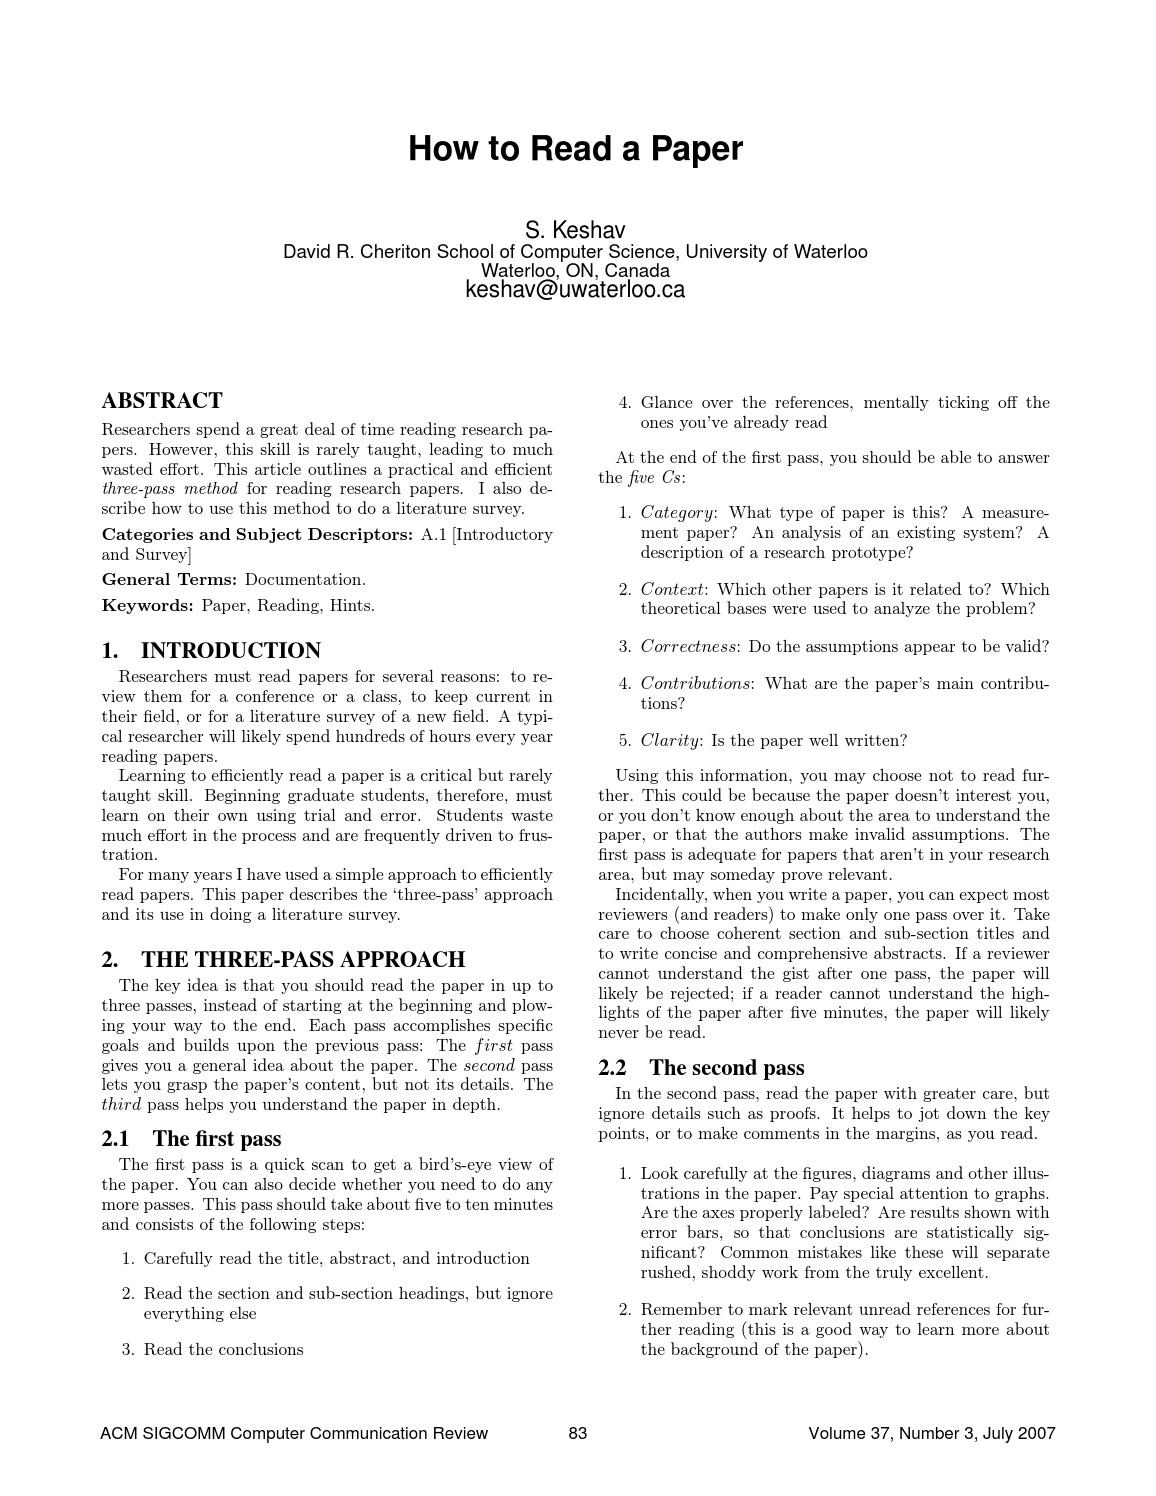 guideline to write a research paper in computer field